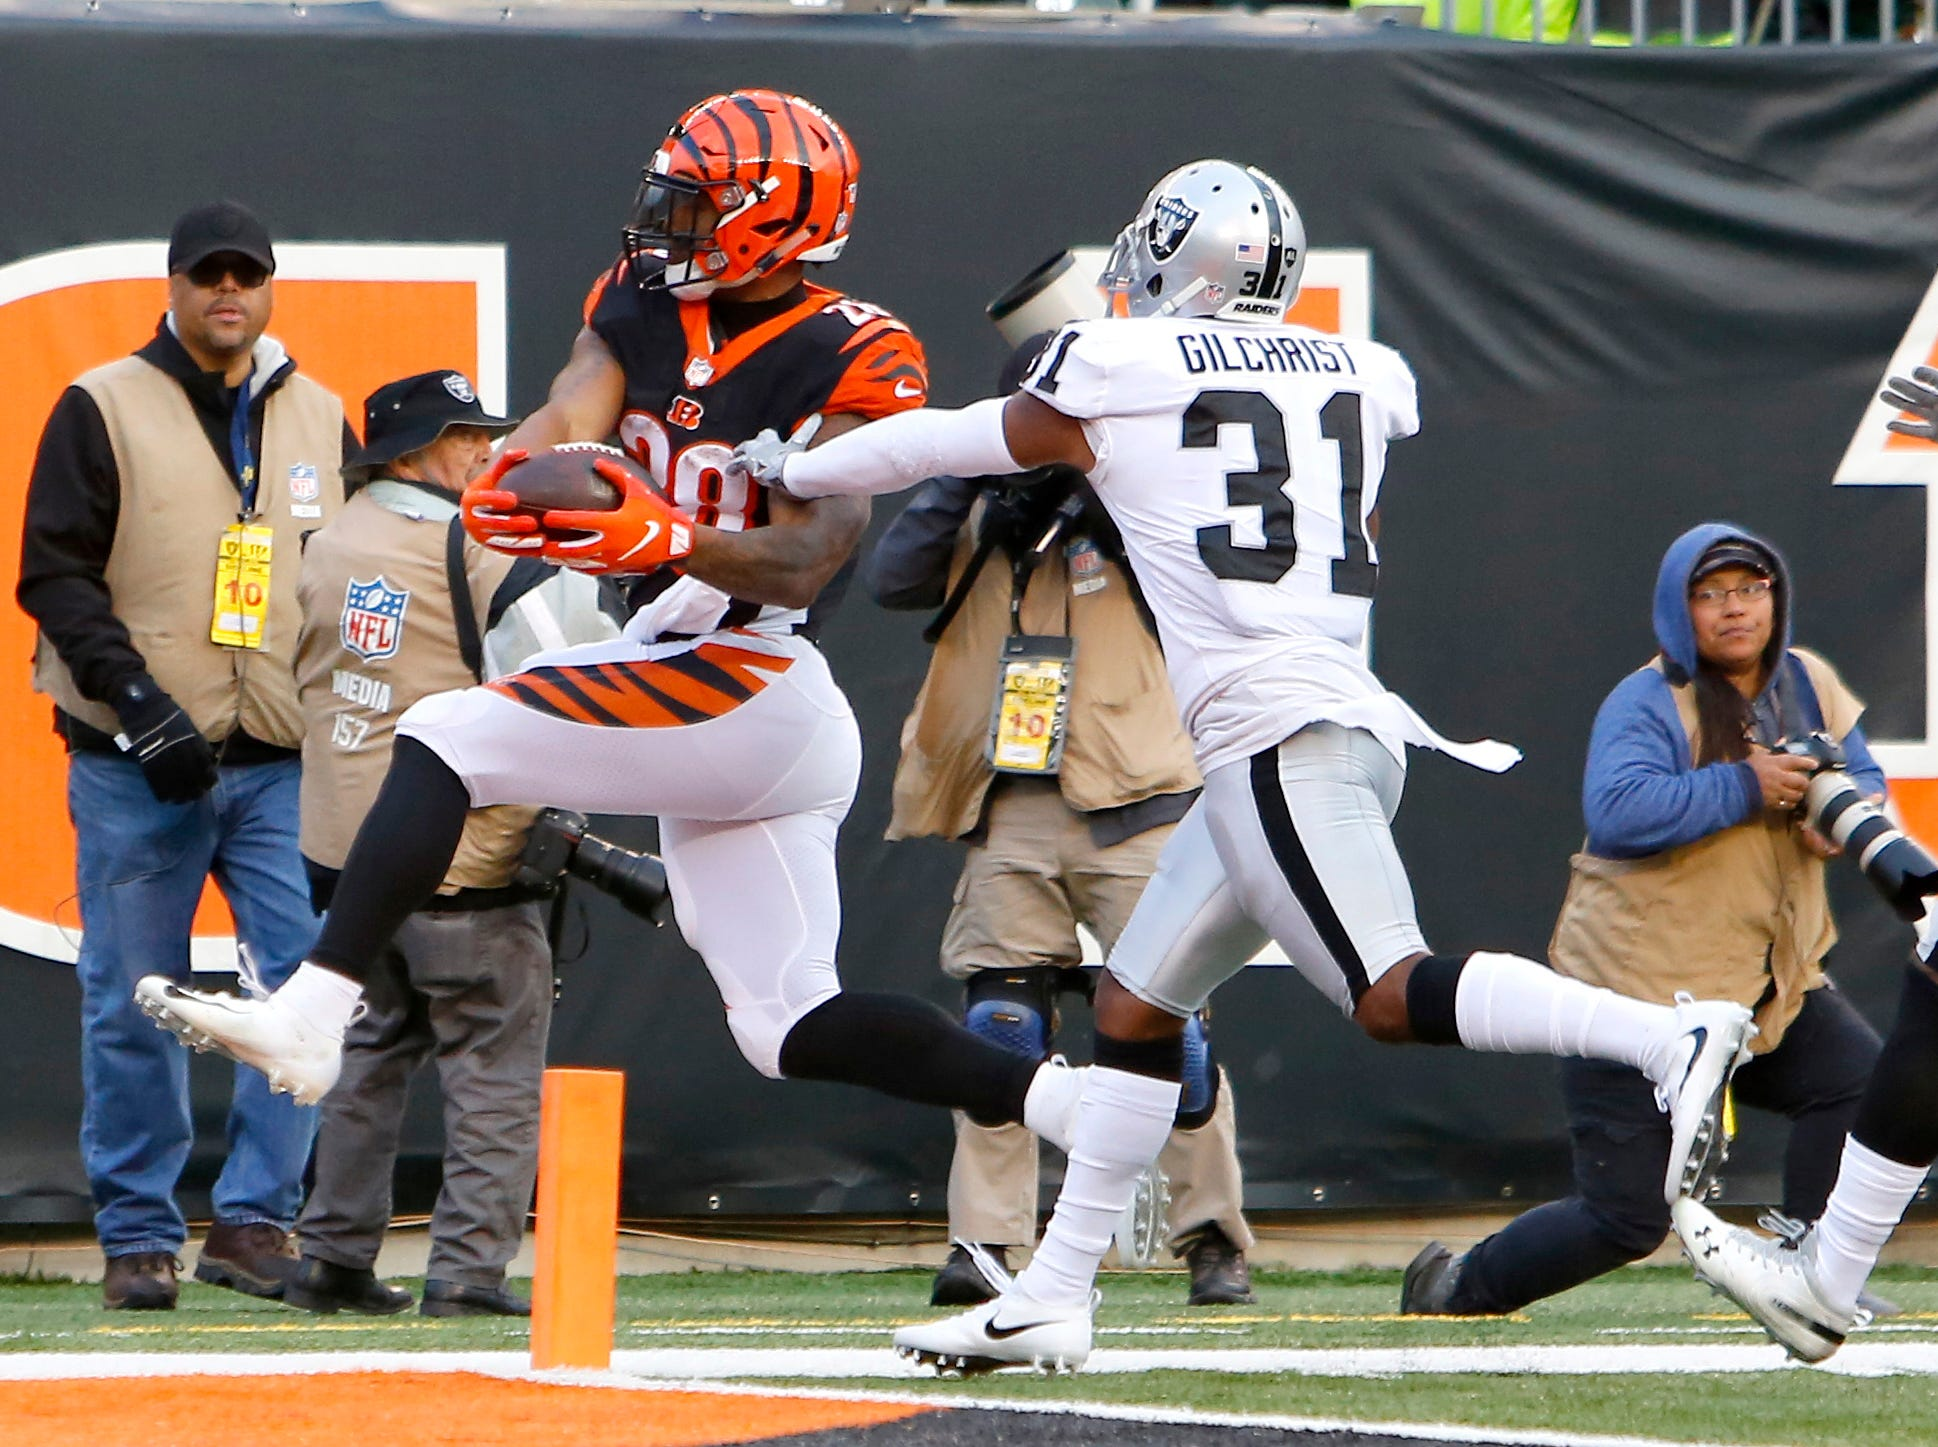 Cincinnati Bengals running back Joe Mixon (28) scores a touchdown ahead of Oakland Raiders strong safety Marcus Gilchrist (31) during the second half at Paul Brown Stadium.